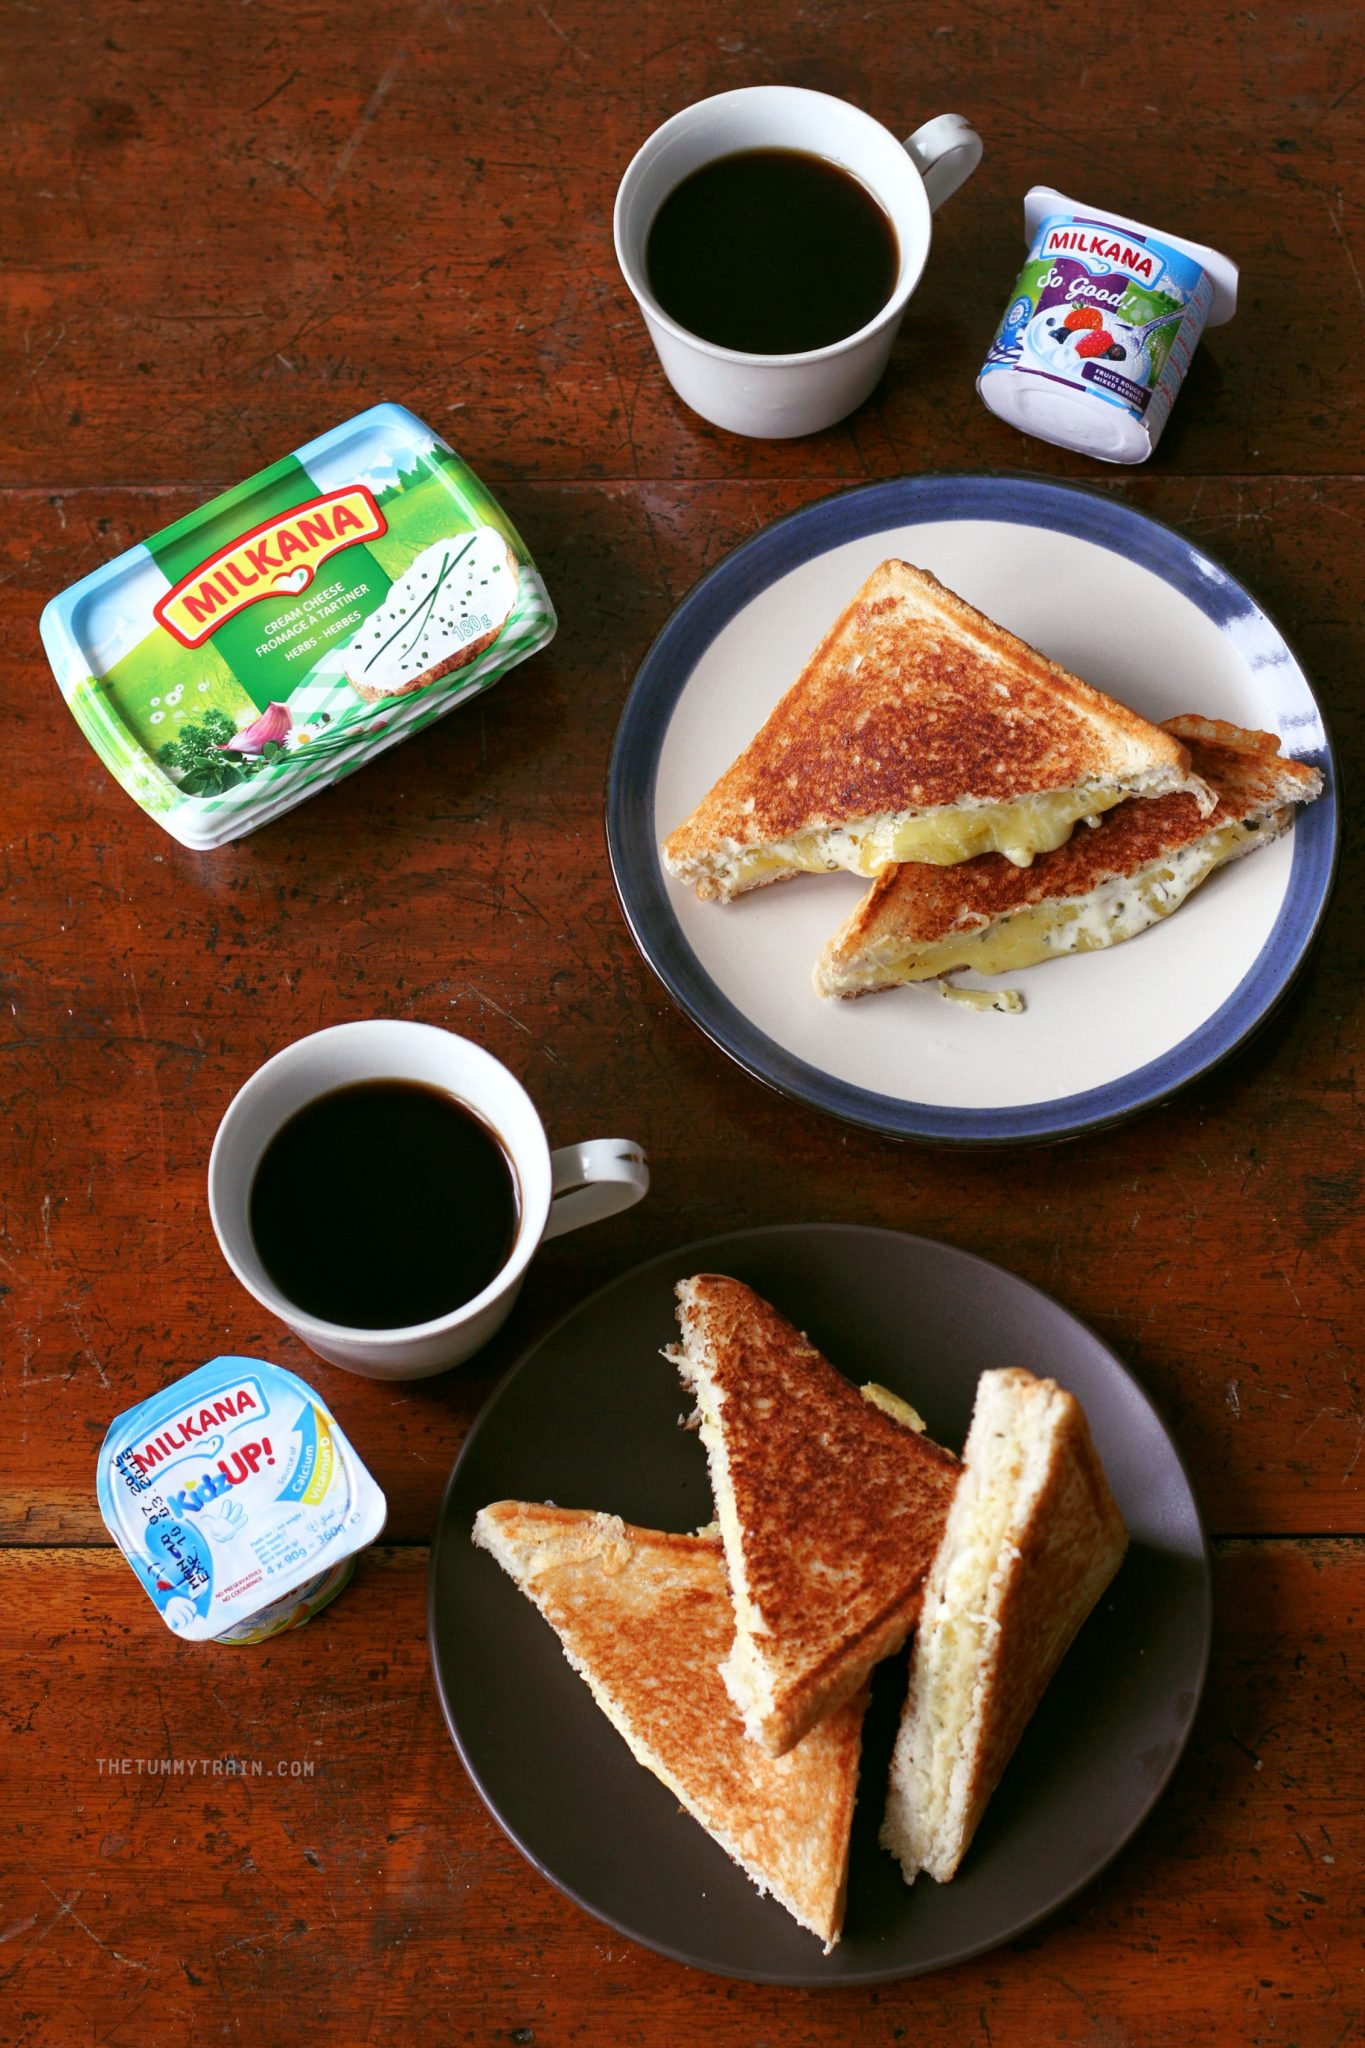 23571294991 83637e6349 o - Milkana Grilled Cheese Sandwiches for a little mid-week treat!